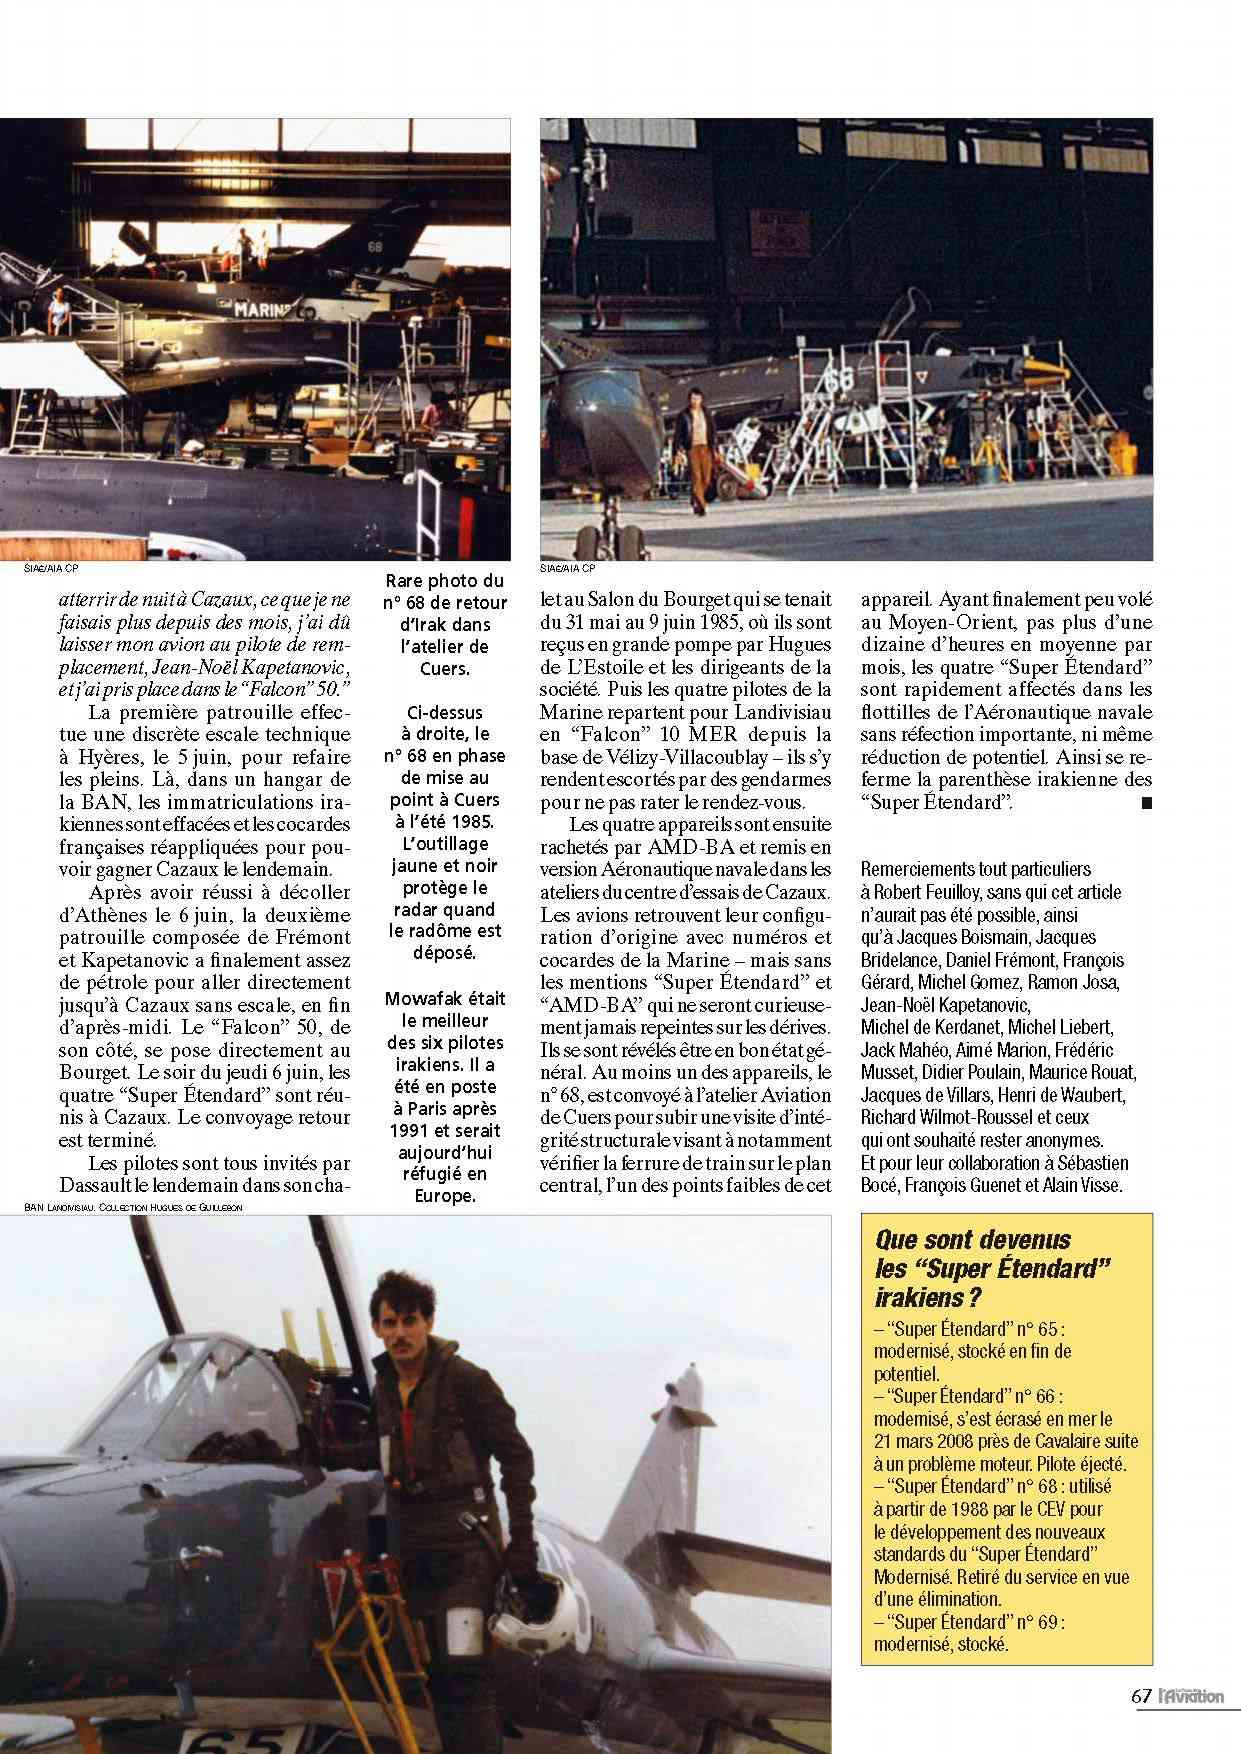 Guerre Iran-Irak - Page 3 S3710